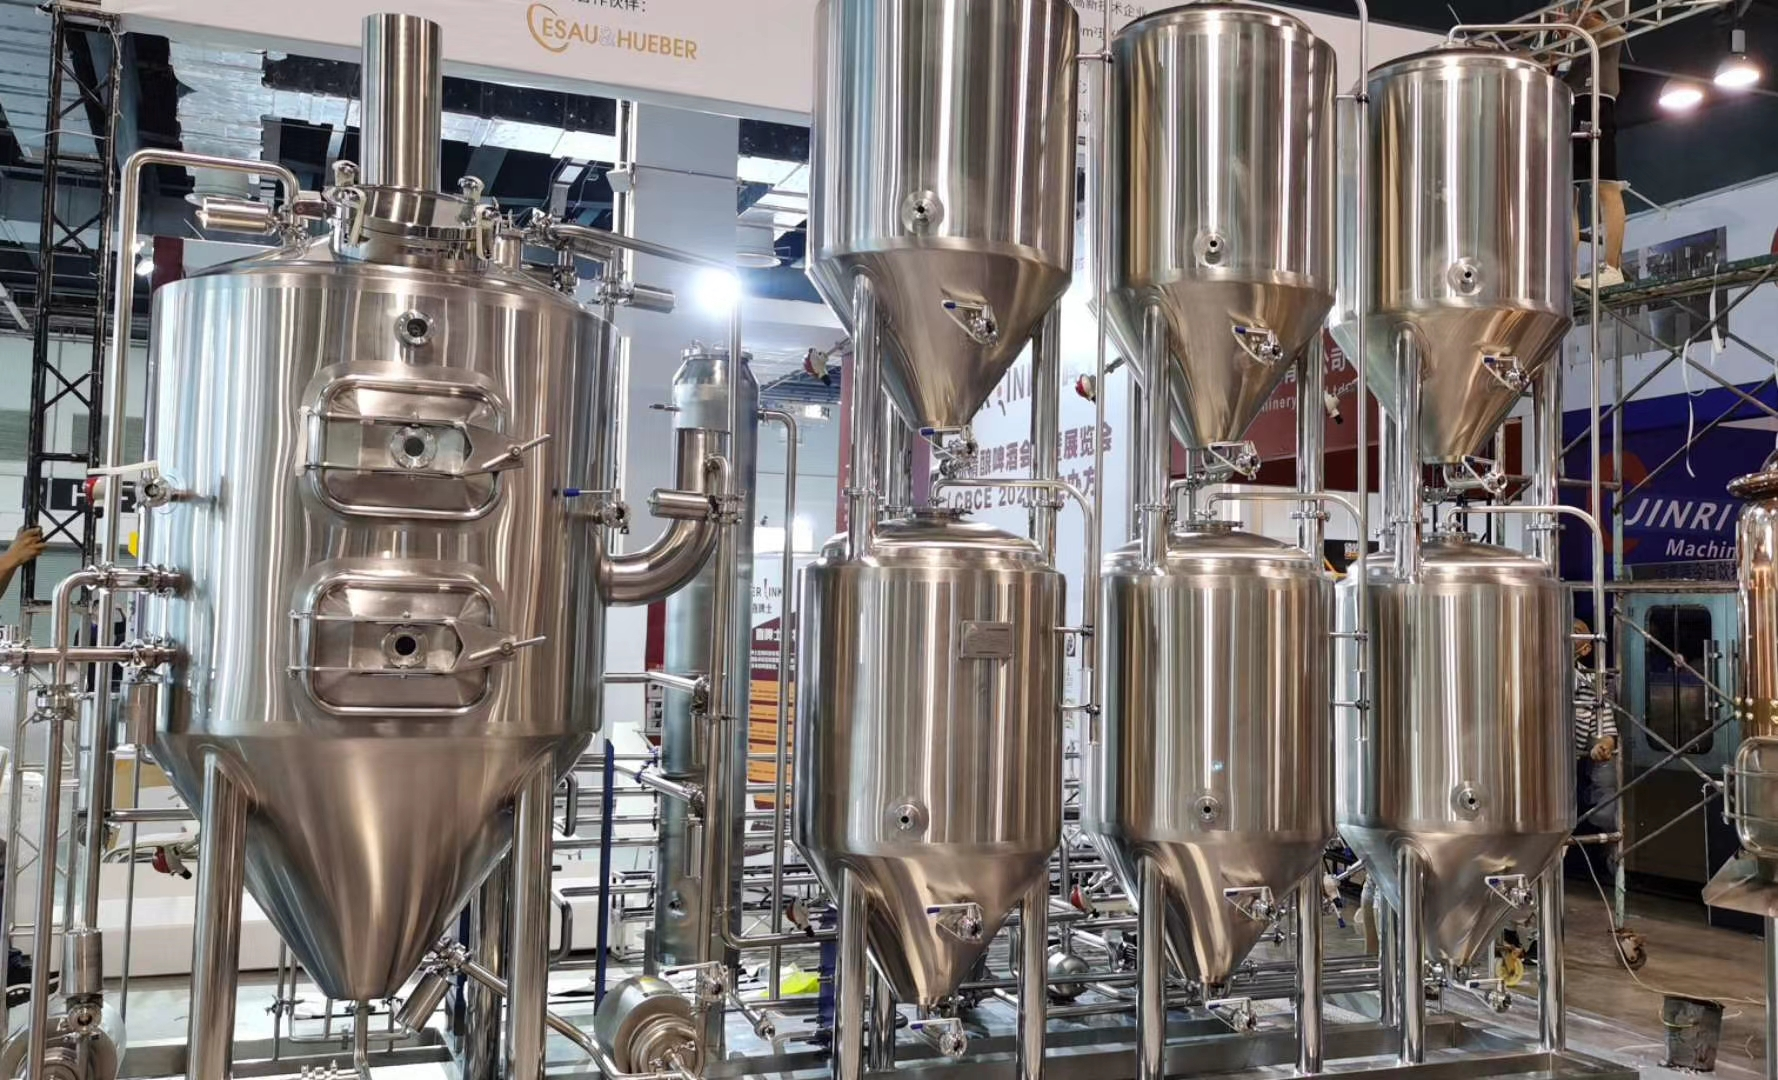 Venezuela professional stainless steel turnkey beer brewing system China factory 2020 W1